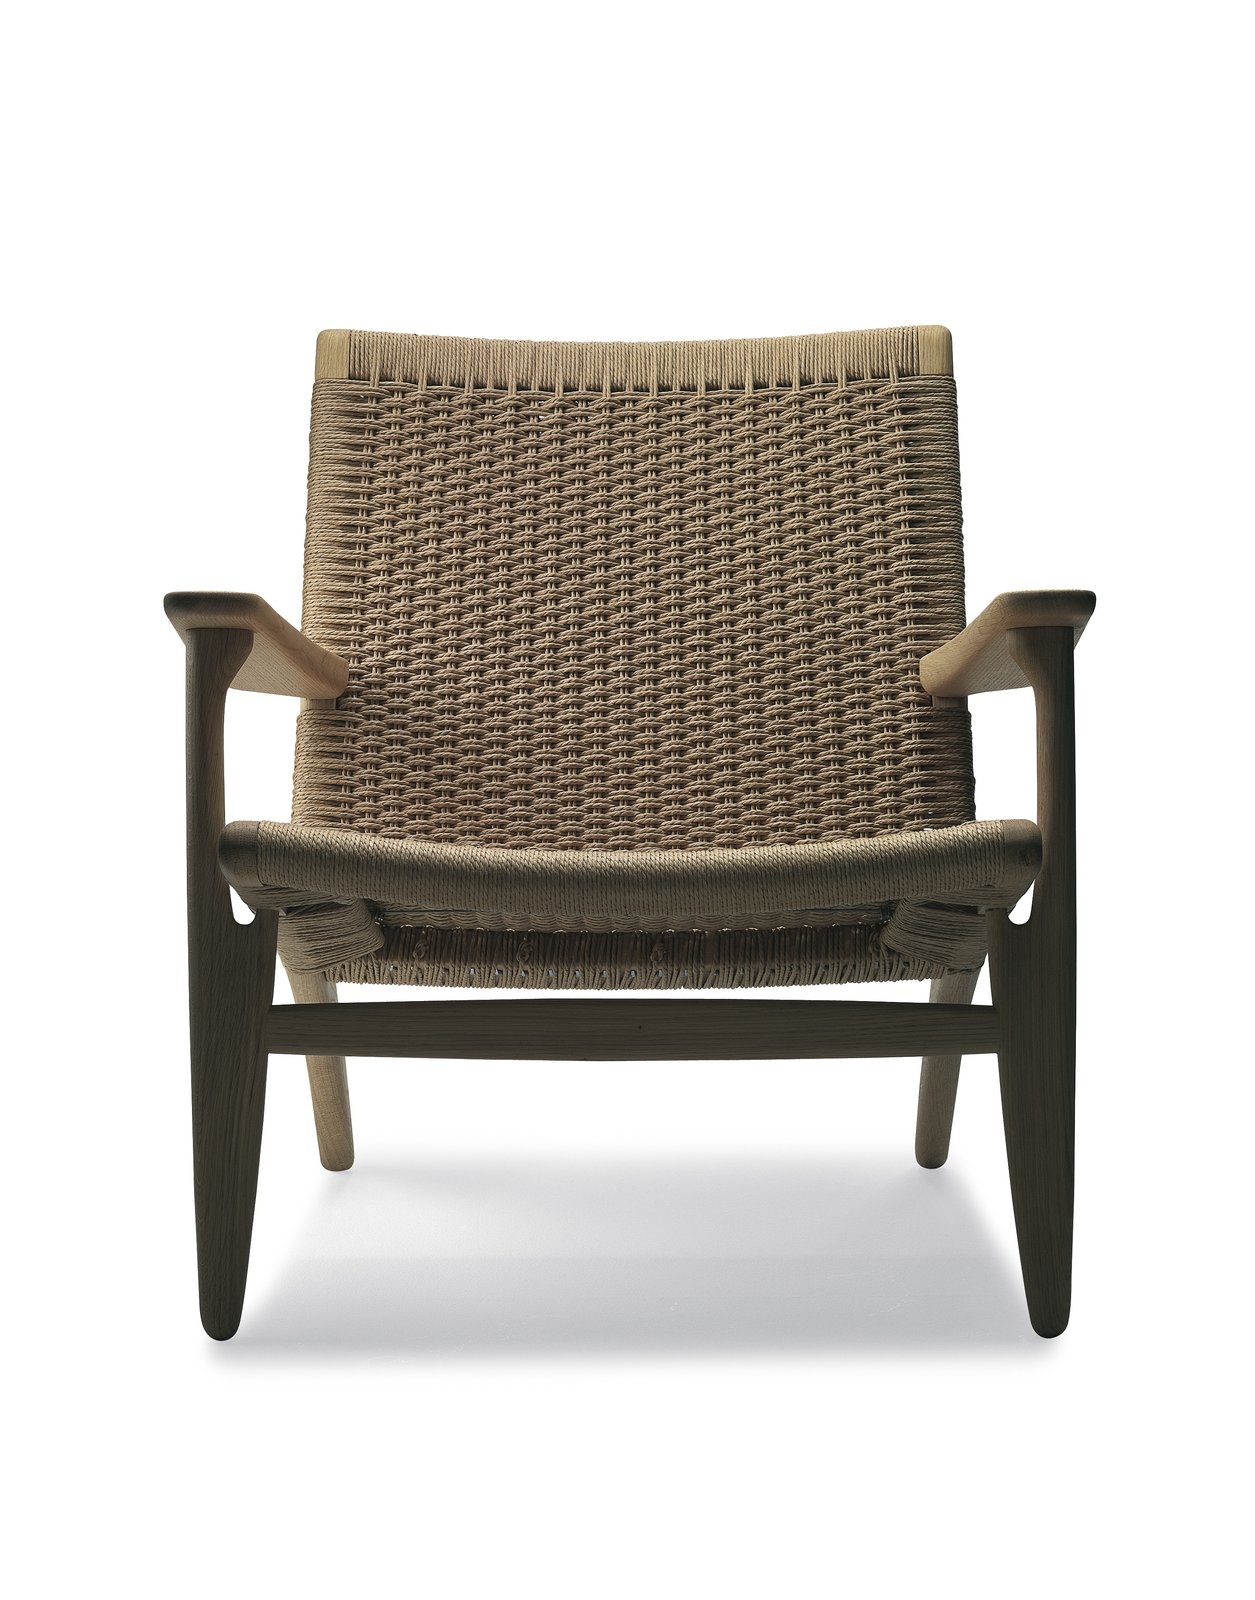 It requires roughly ten hours for a craftsman to weave paper cord across the curved frame of this oak Easy Chair (1950) before it's complete. Another example of Wegner melding design and material without unnecessary fuss or adornment. Photo courtesy Carl Hansen & Son.  Photo 9 of 9 in 8 Iconic Chairs by Hans Wegner